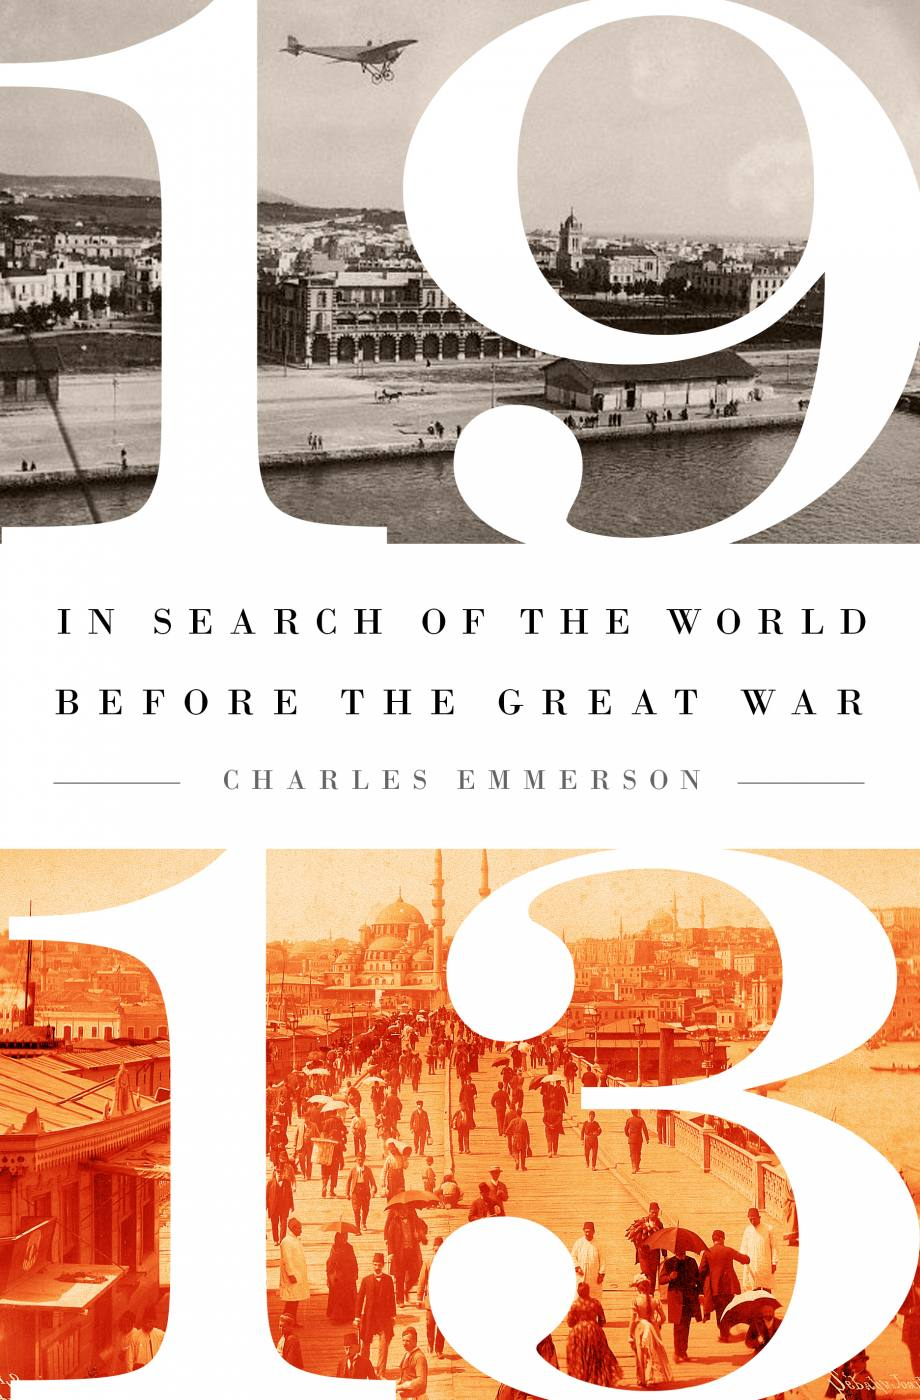 1913: The World Before the Great War